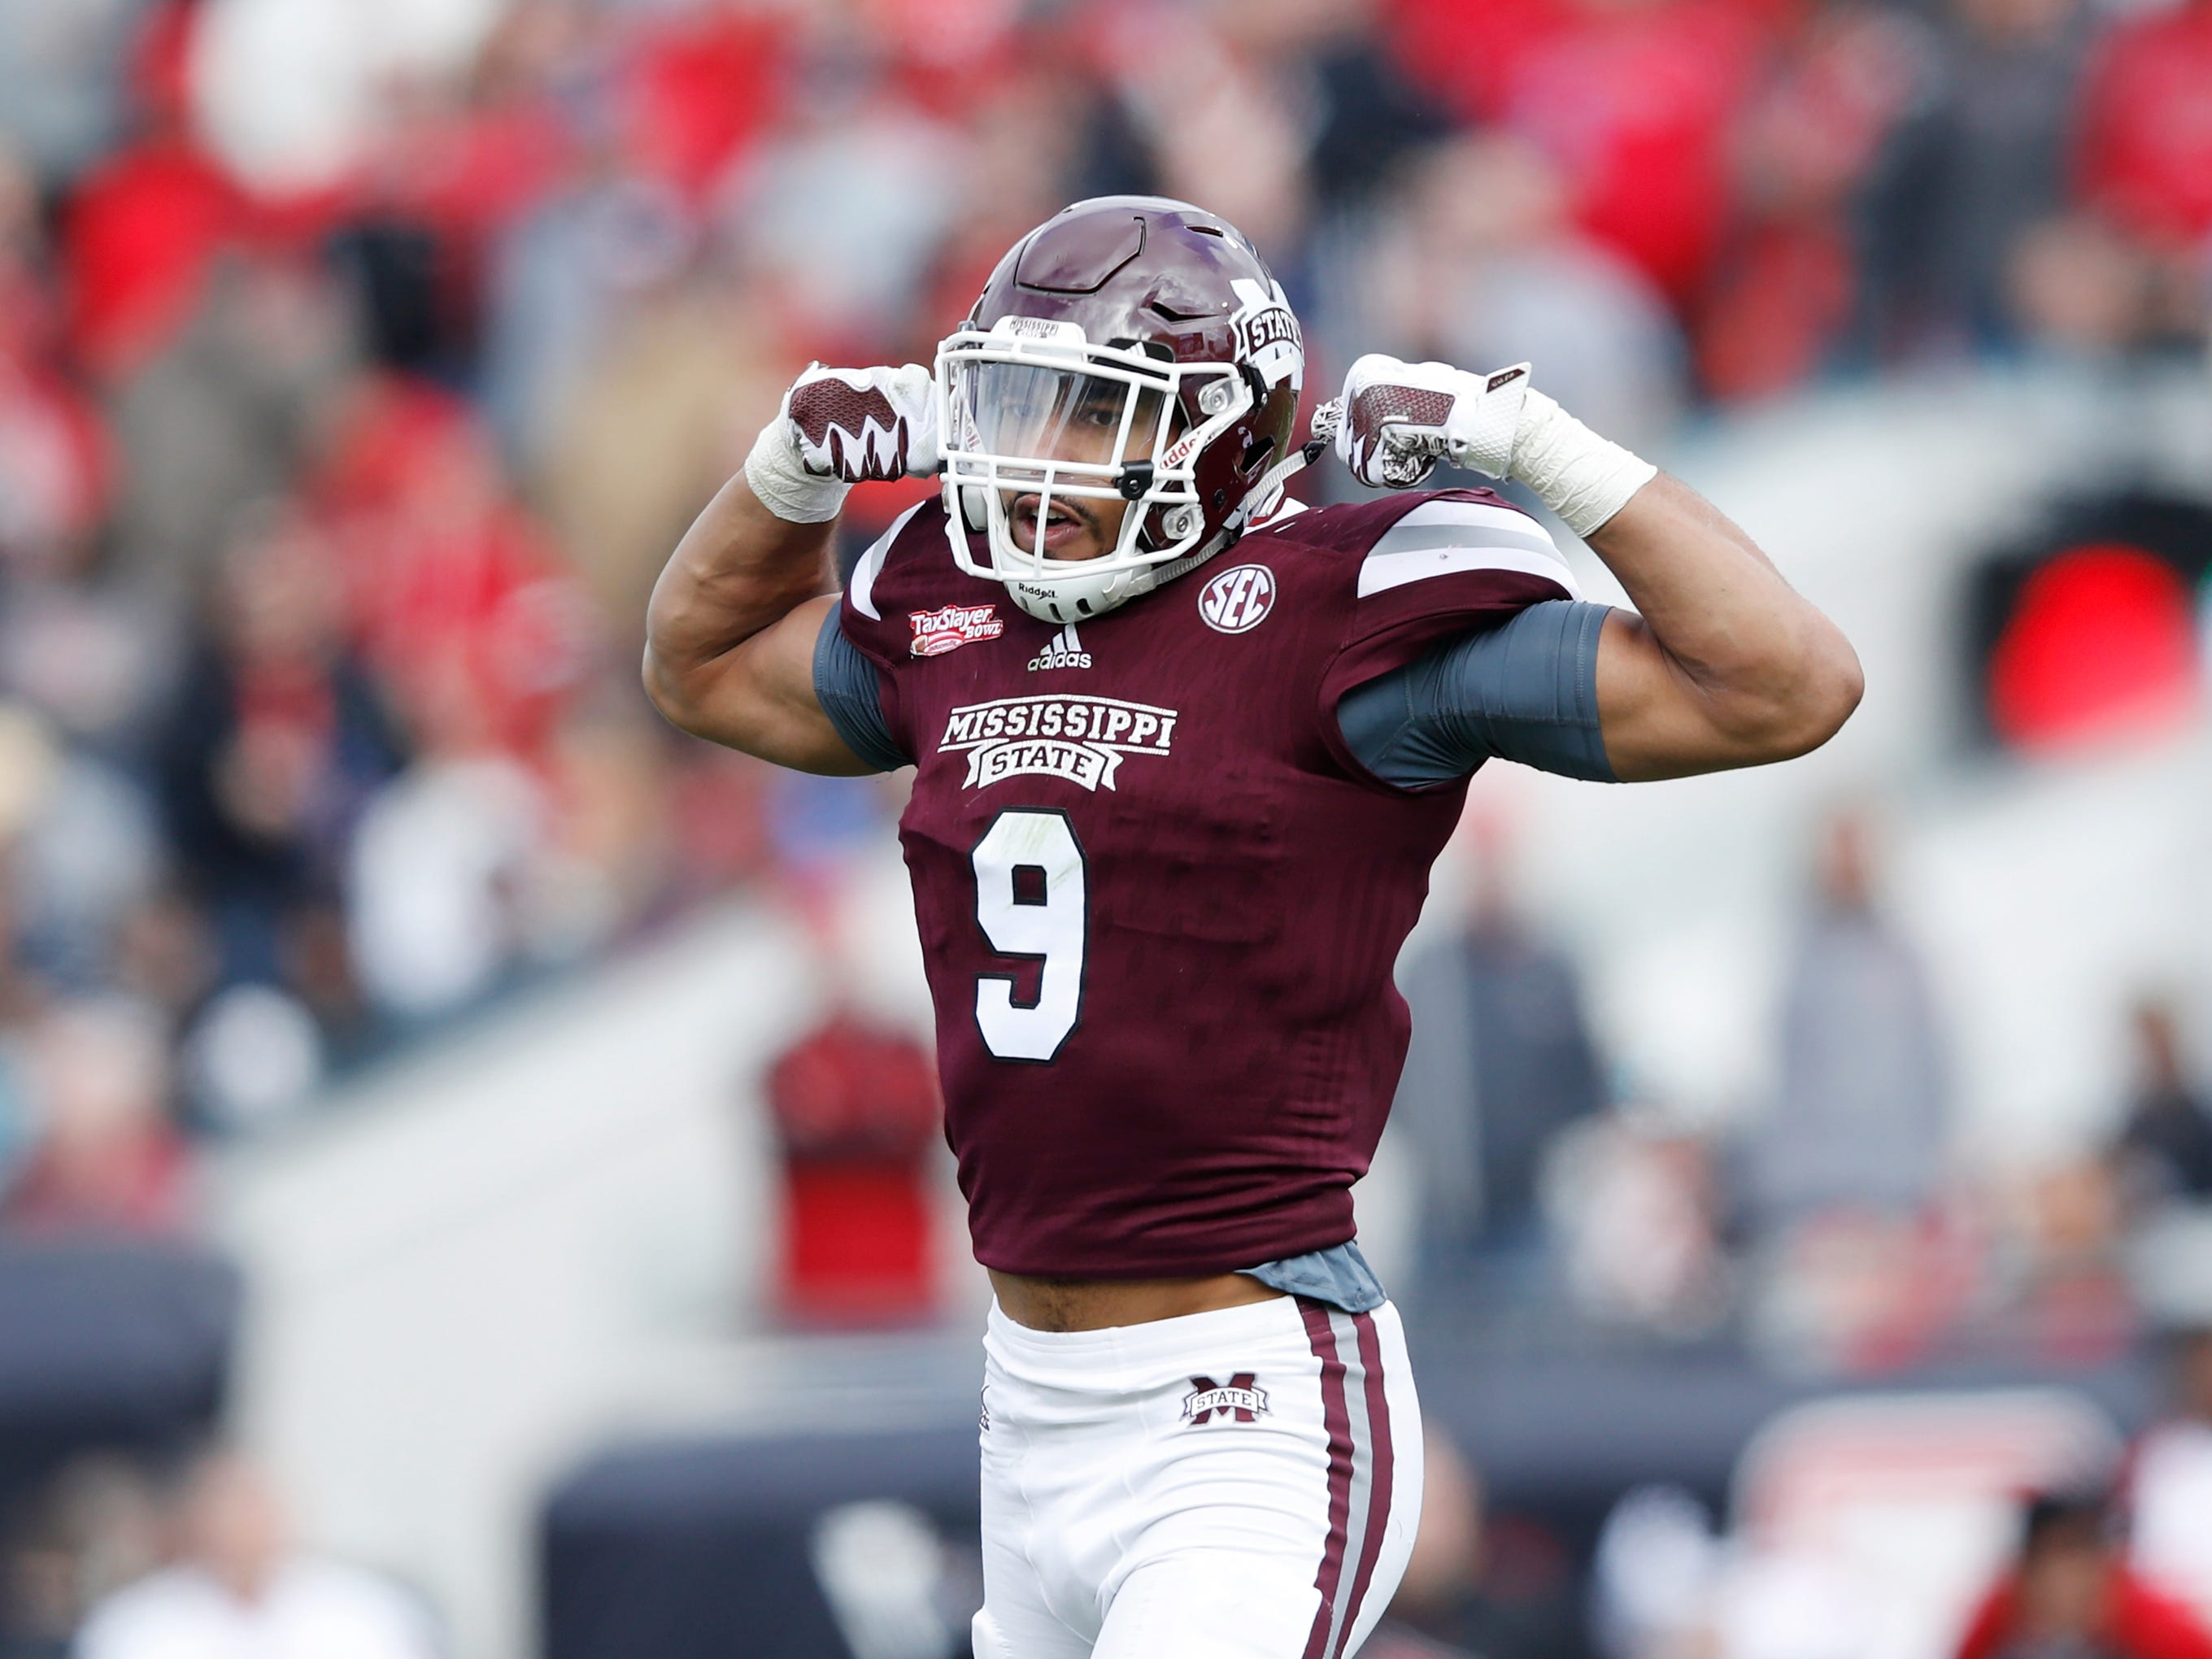 9. Montez Sweat, DE, Mississippi State: Another hefty sack producer, the former Michigan State recruit has reached his potential playing in the SEC, churning out 21.5 sacks over the past two seasons. Sweat is tall and long, but with a listed weight of 245 pounds, he would be limited to working as a strong-side linebacker, in a rotation with Devon Kennard.